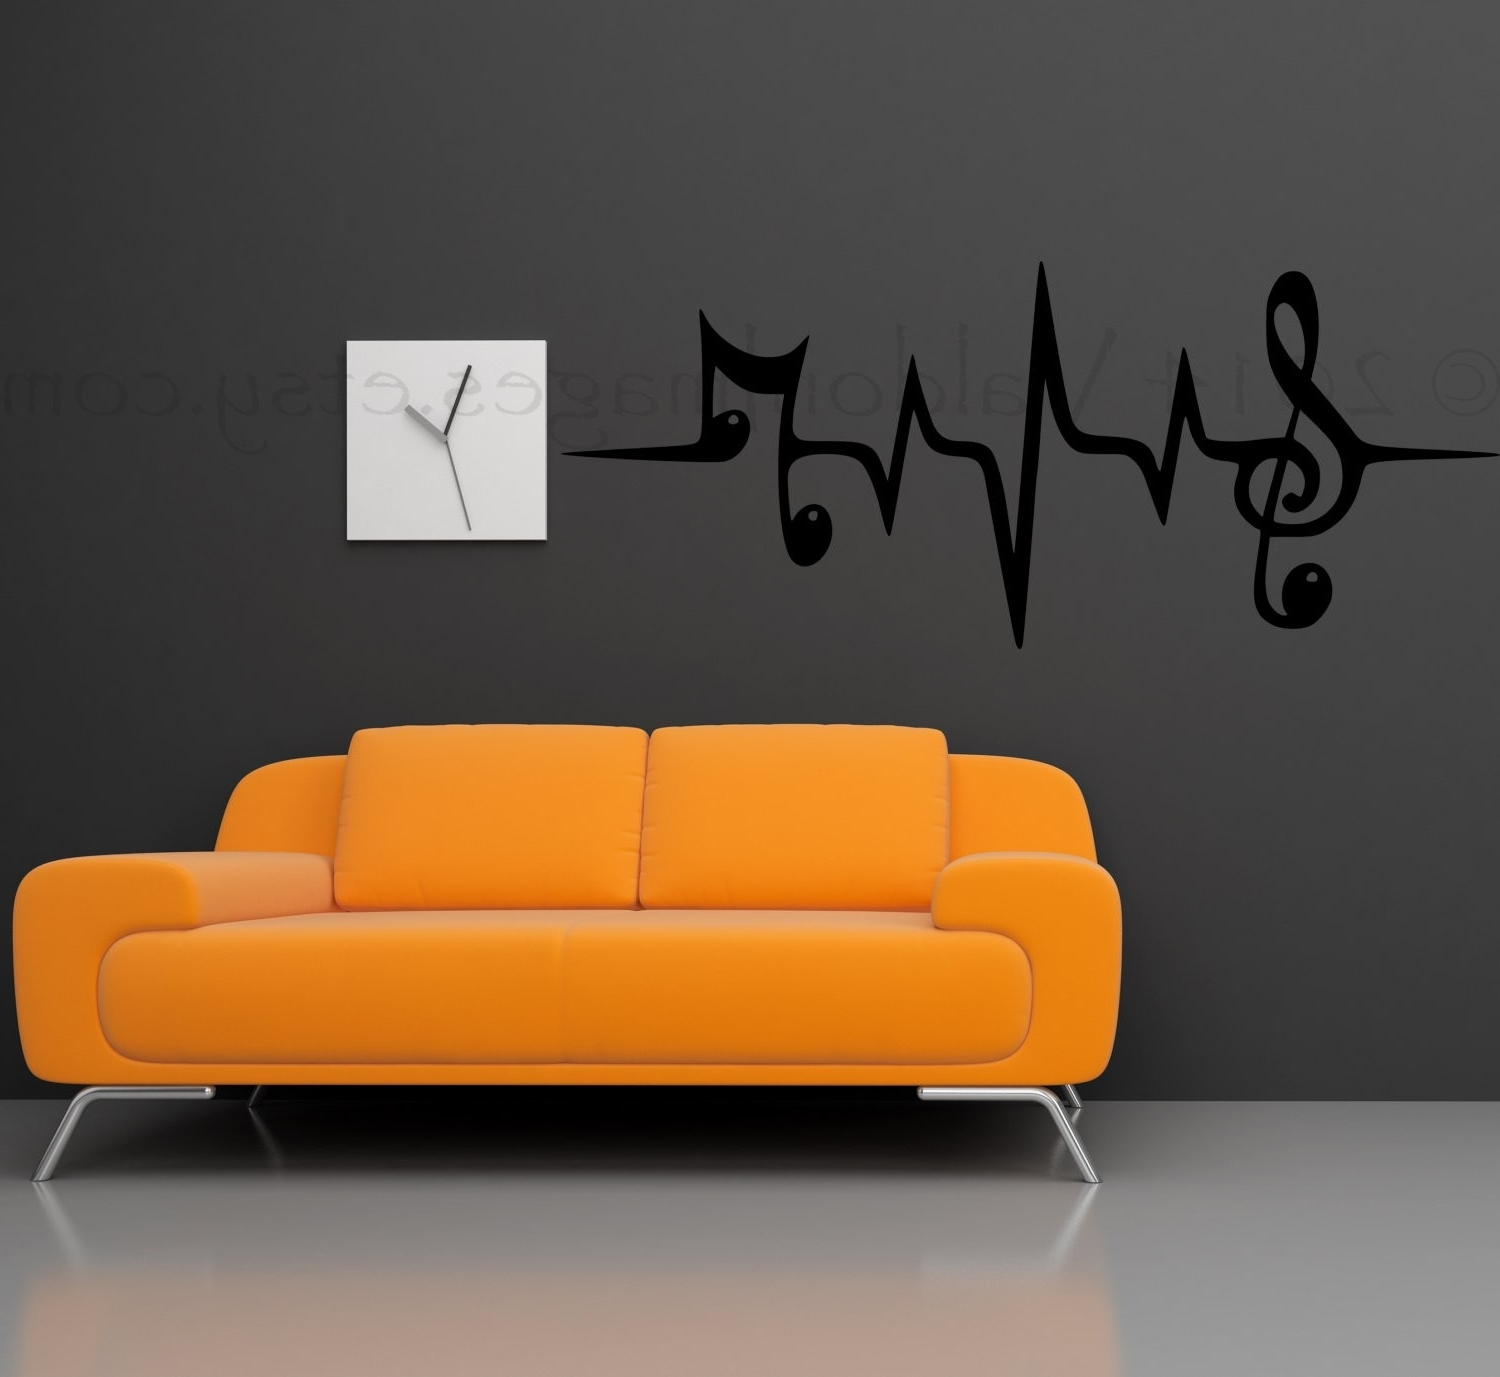 Music Wall Art Intended For Current Phantasy Sensational Music Wall Art Treble Clef Frame Paper Zoom (View 9 of 15)